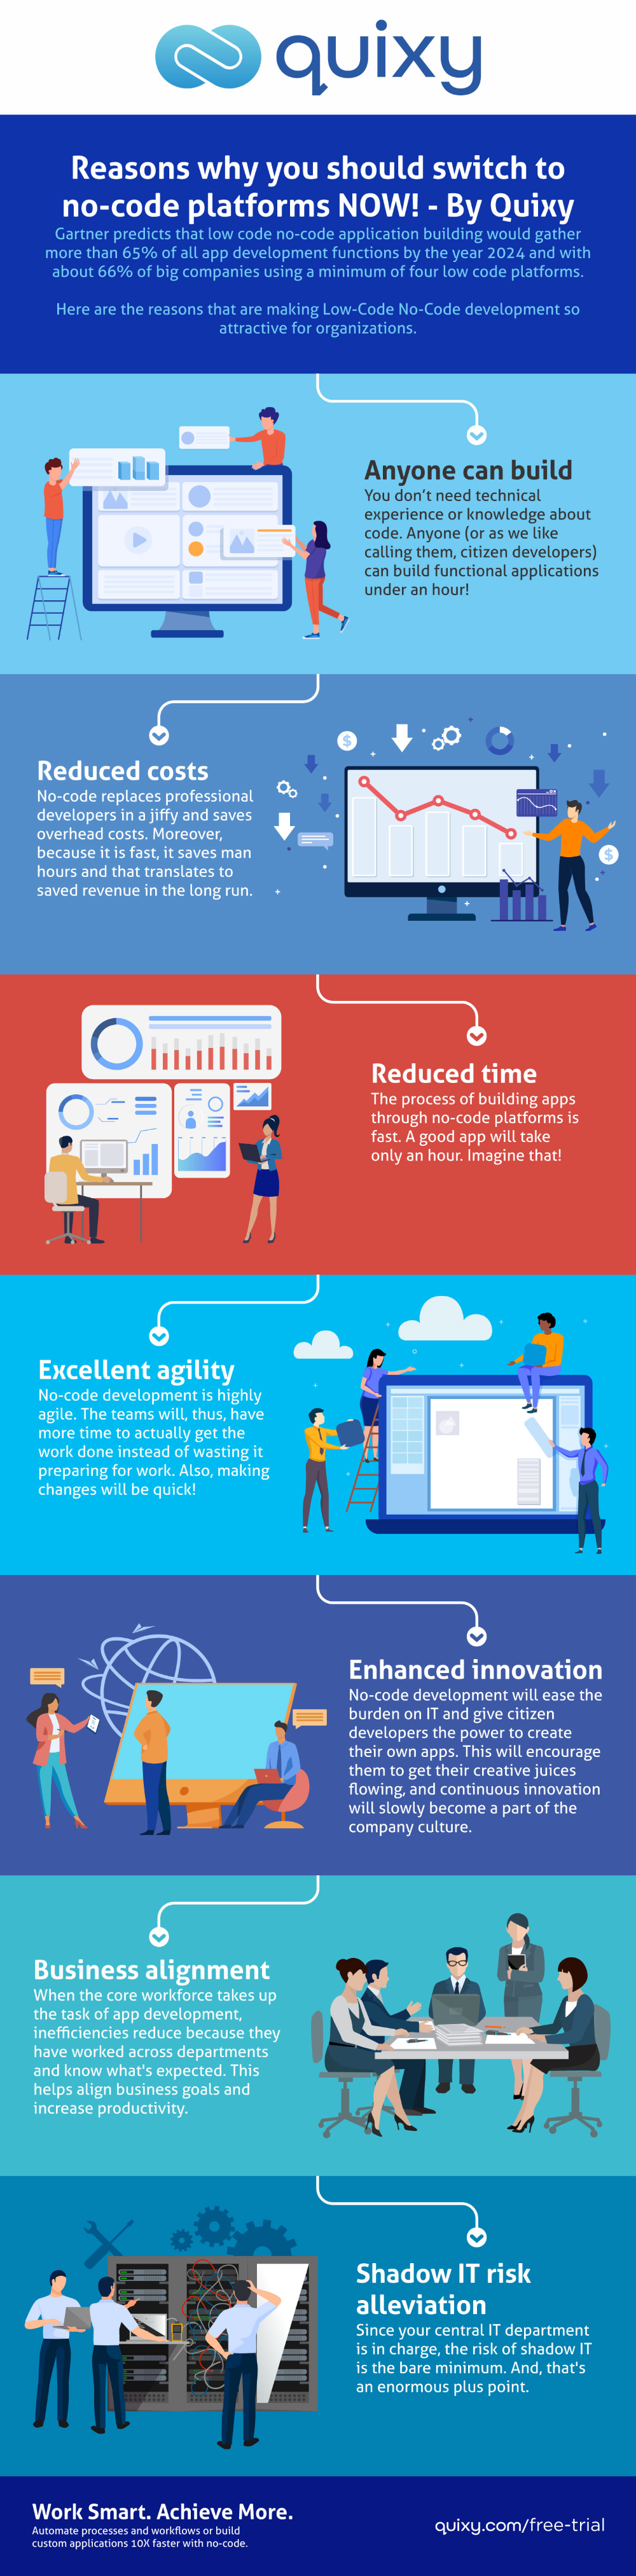 Infographic Benefits Of No Code Platforms Quixy Infographic Coding Work Culture